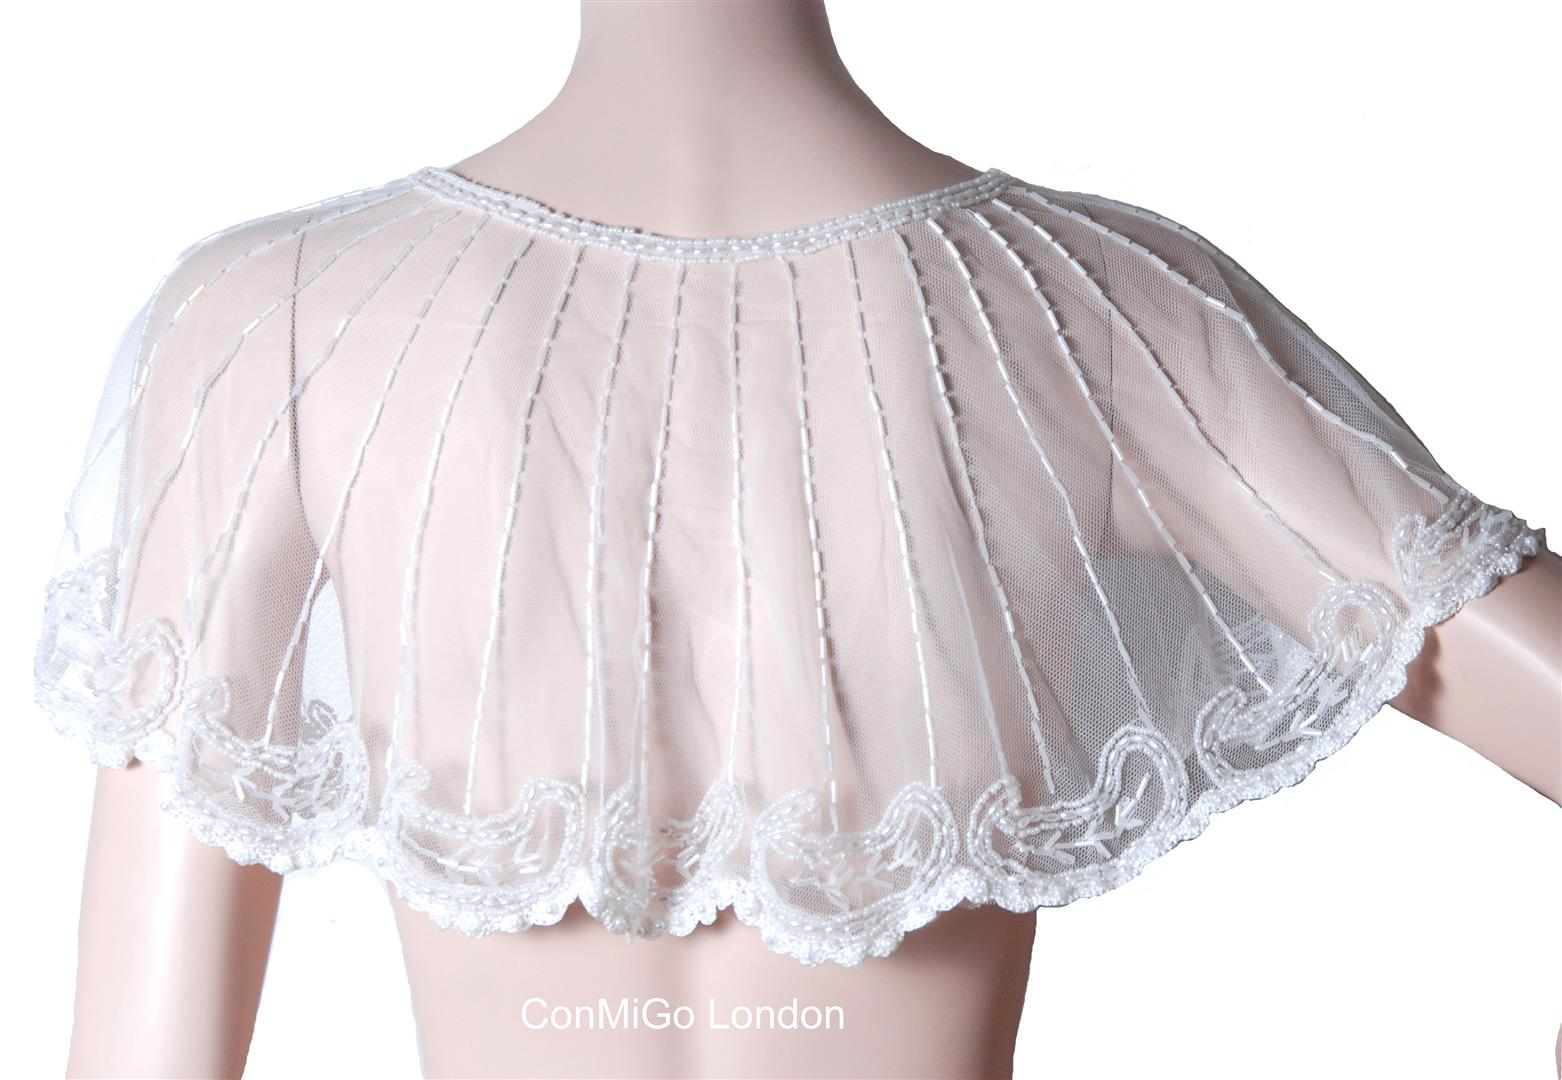 http://www.conmigolondon.co.uk/ekmps/shops/conmigo/images/conmigo-1930s-inspired-white-embroidery-mini-party-poncho-%5B2%5D-11894-p.jpg